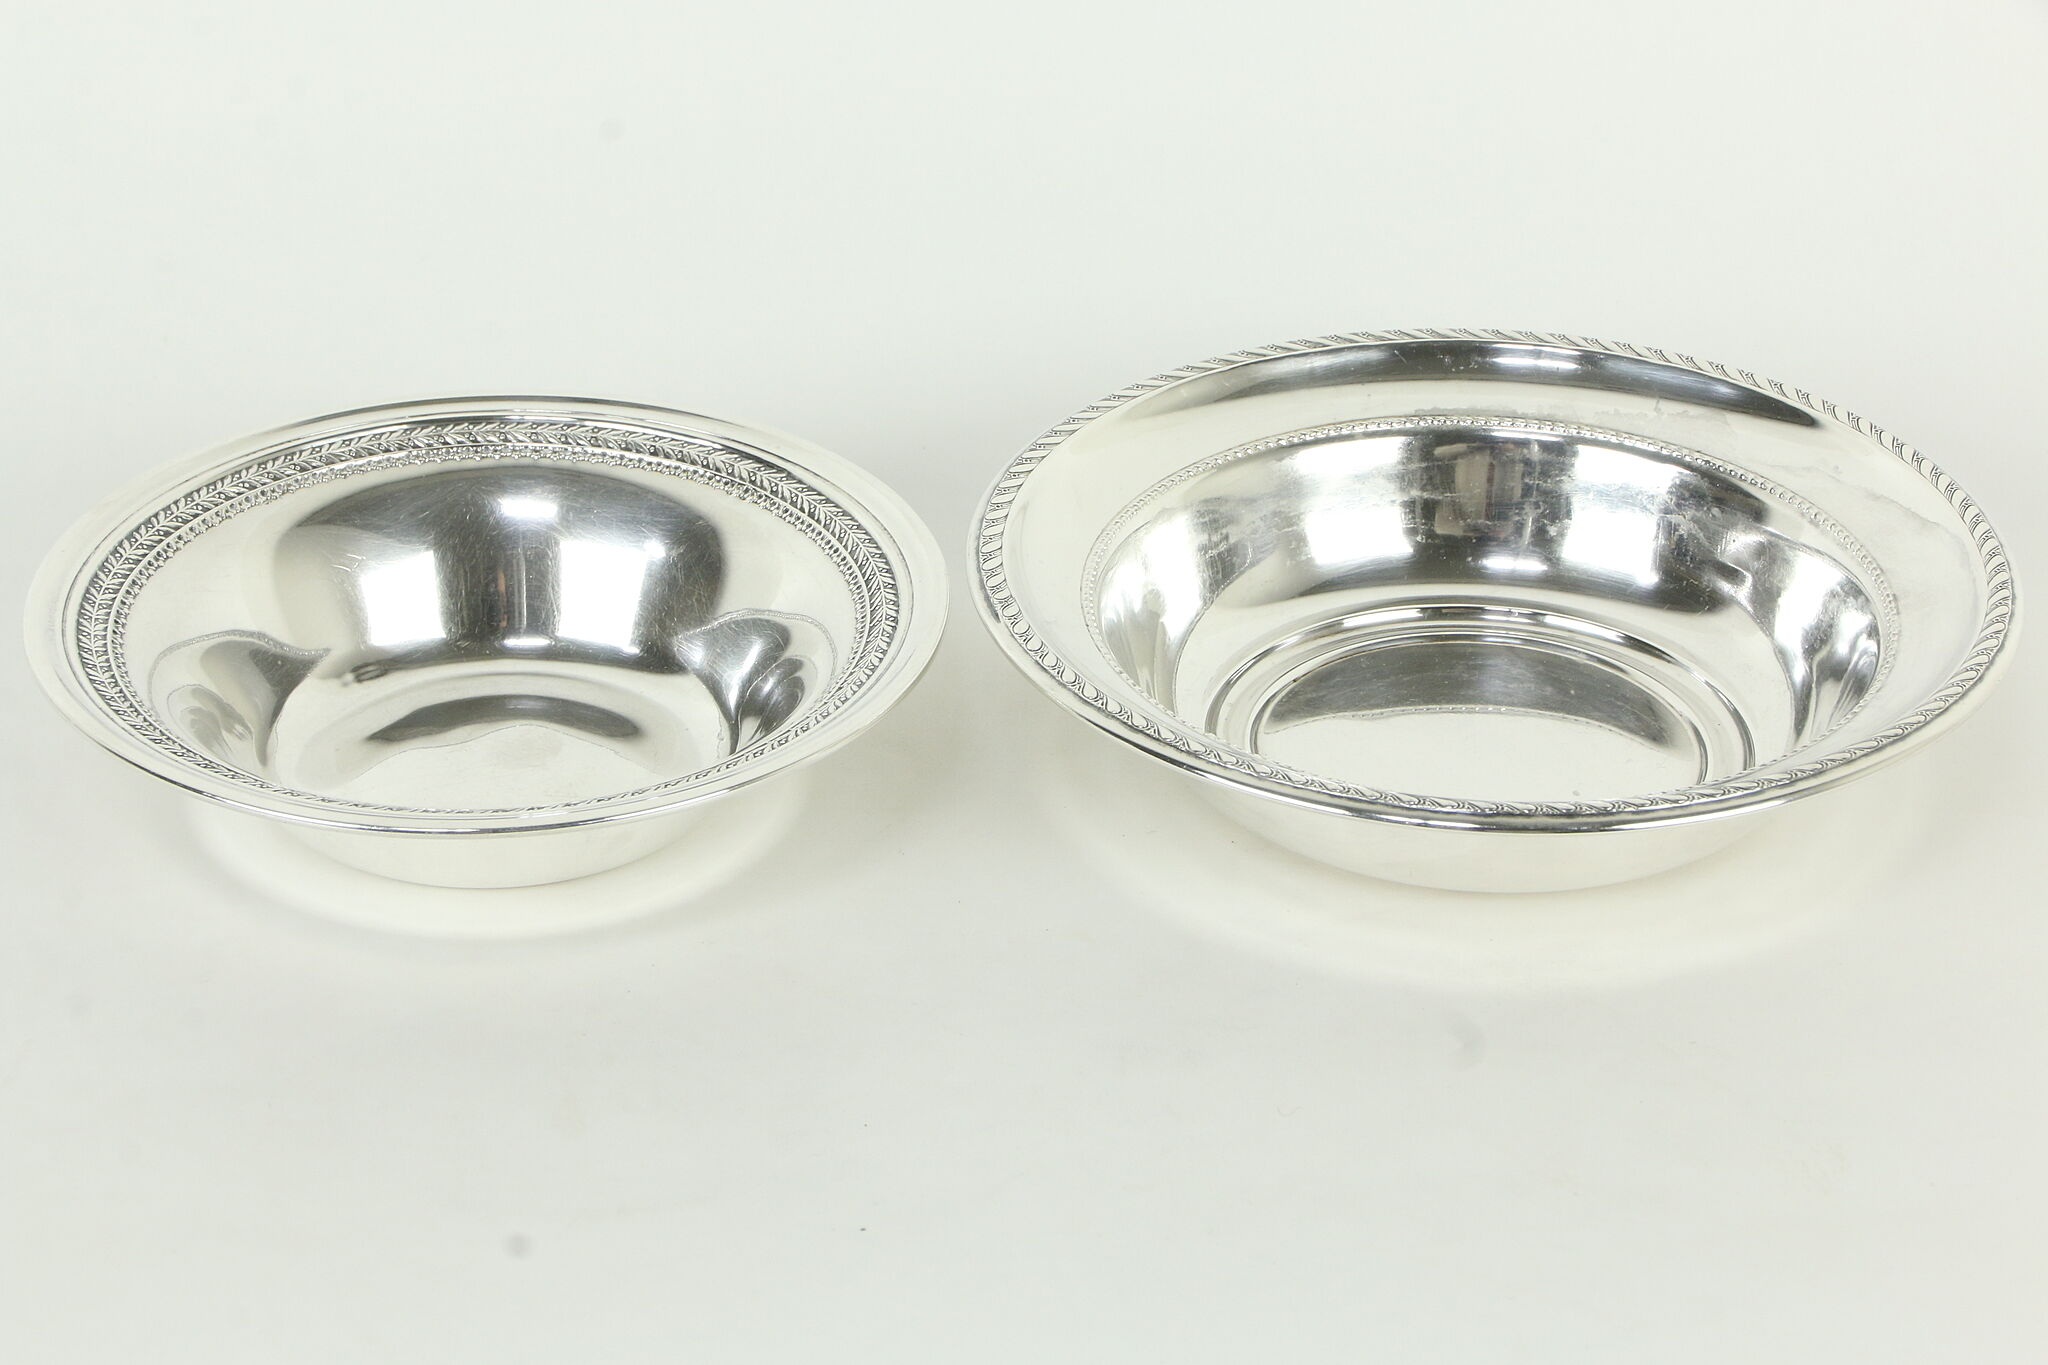 Sold Two Sterling Silver Vintage Serving Bowls Alvin Dh 33503 Harp Gallery Antiques Furniture